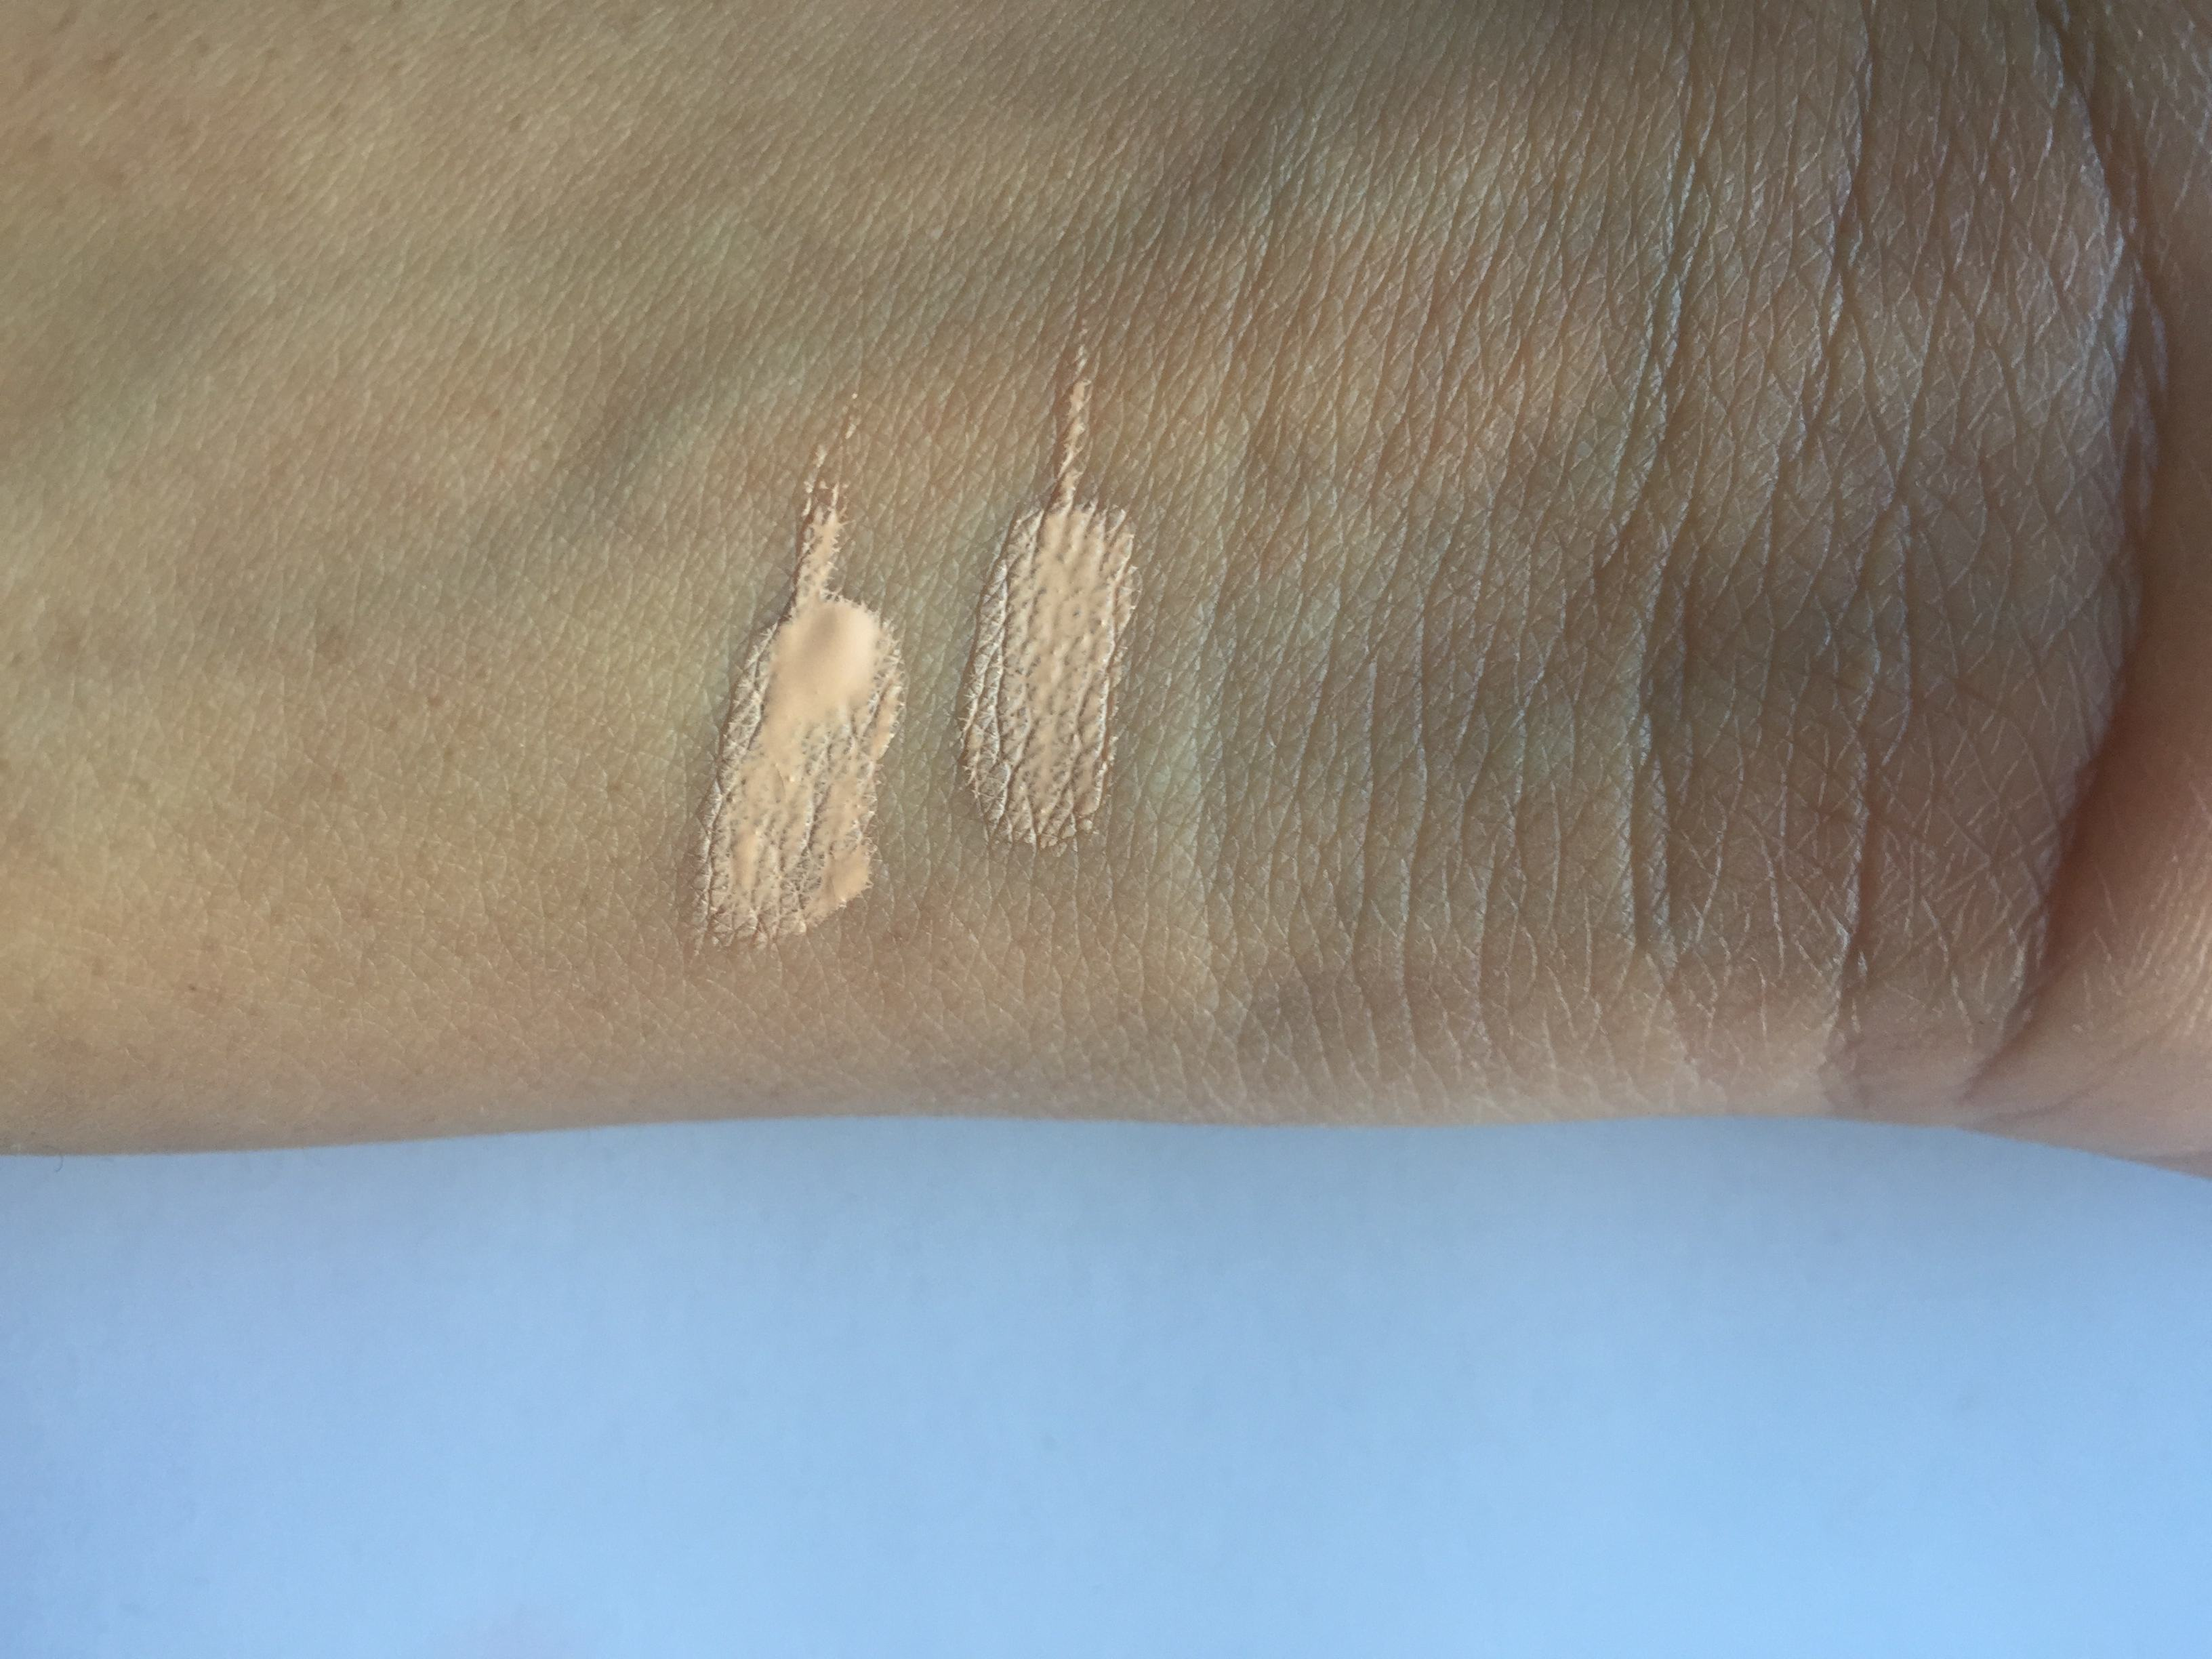 physicians formula super cc correct+ conceal + cover cream